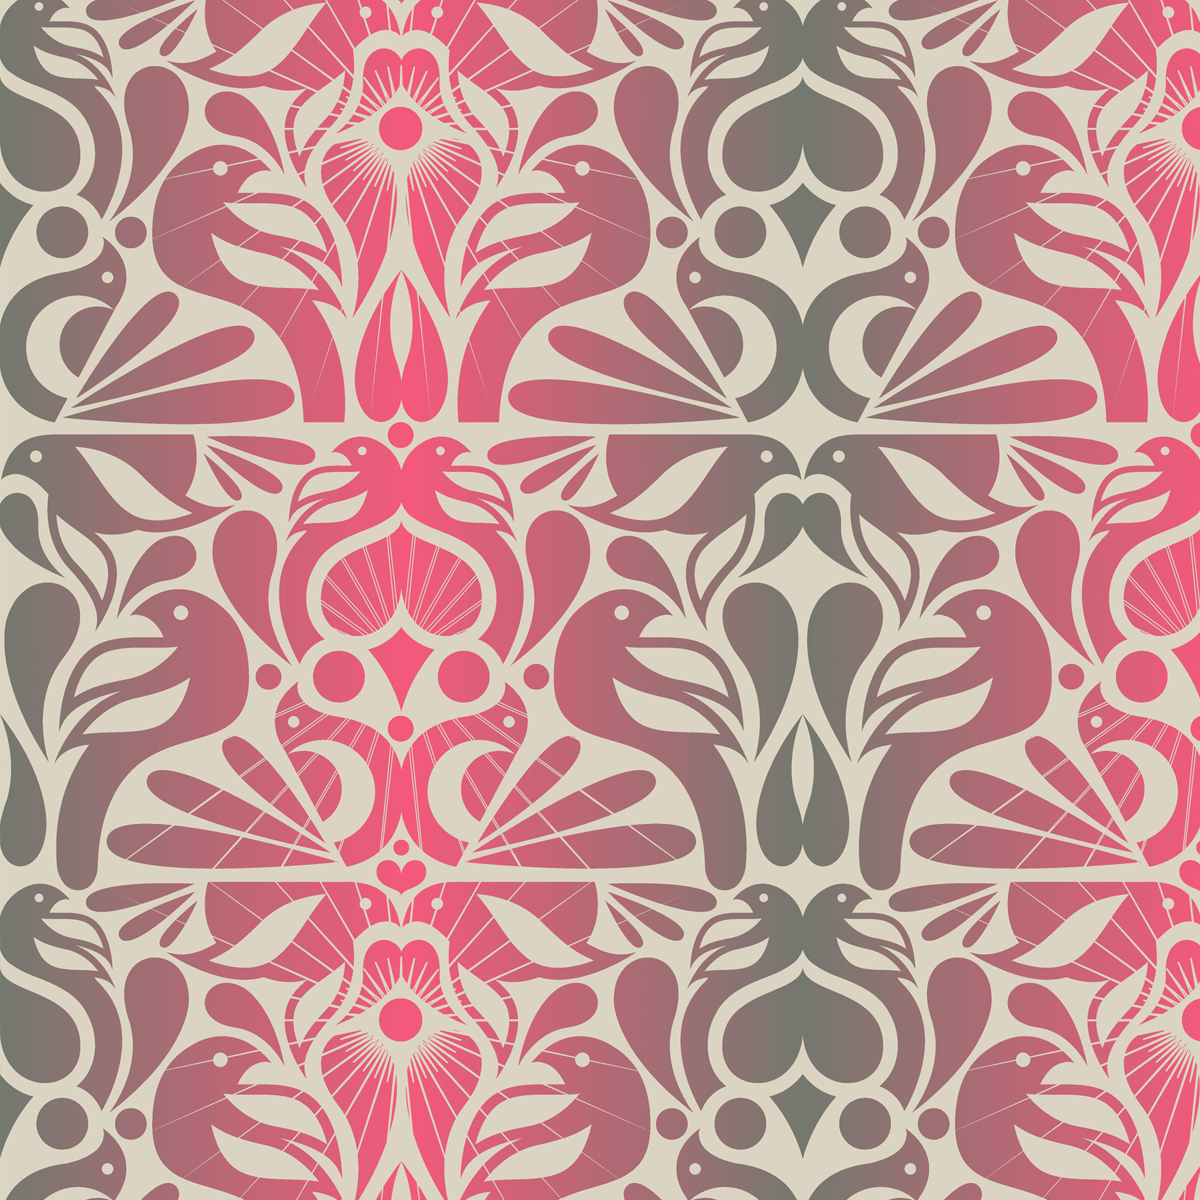 Free Download 70s Wallpaper Pattern Floral Birds Pattern 70s Retro